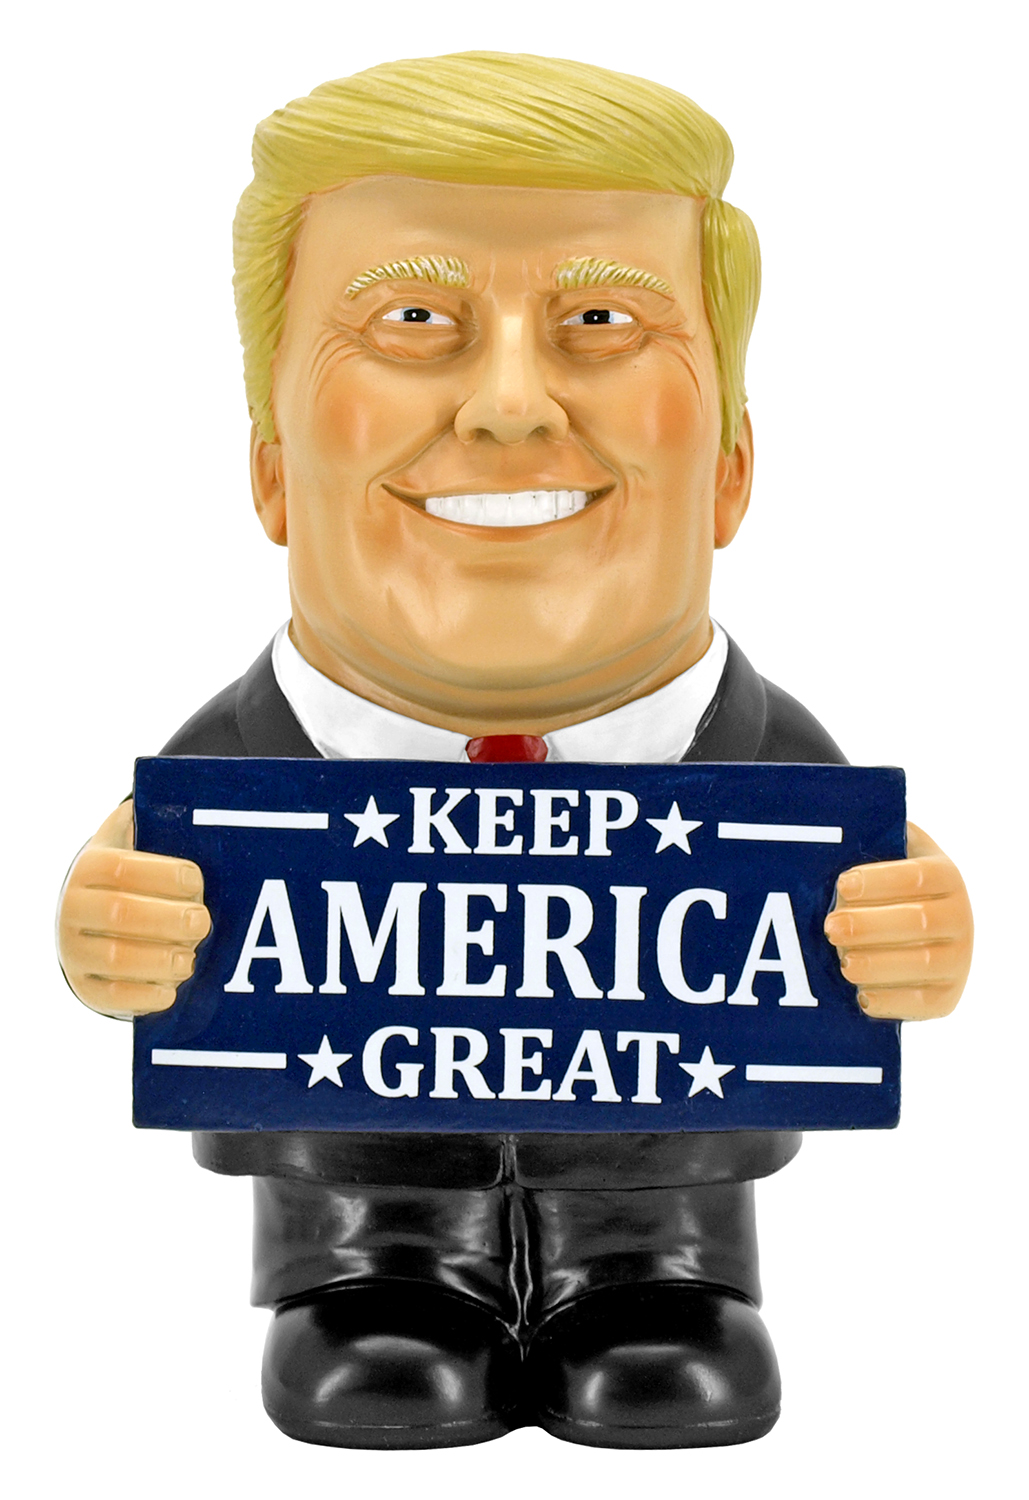 Keep America Great - President Donald Trump Gnome Statue Figurine